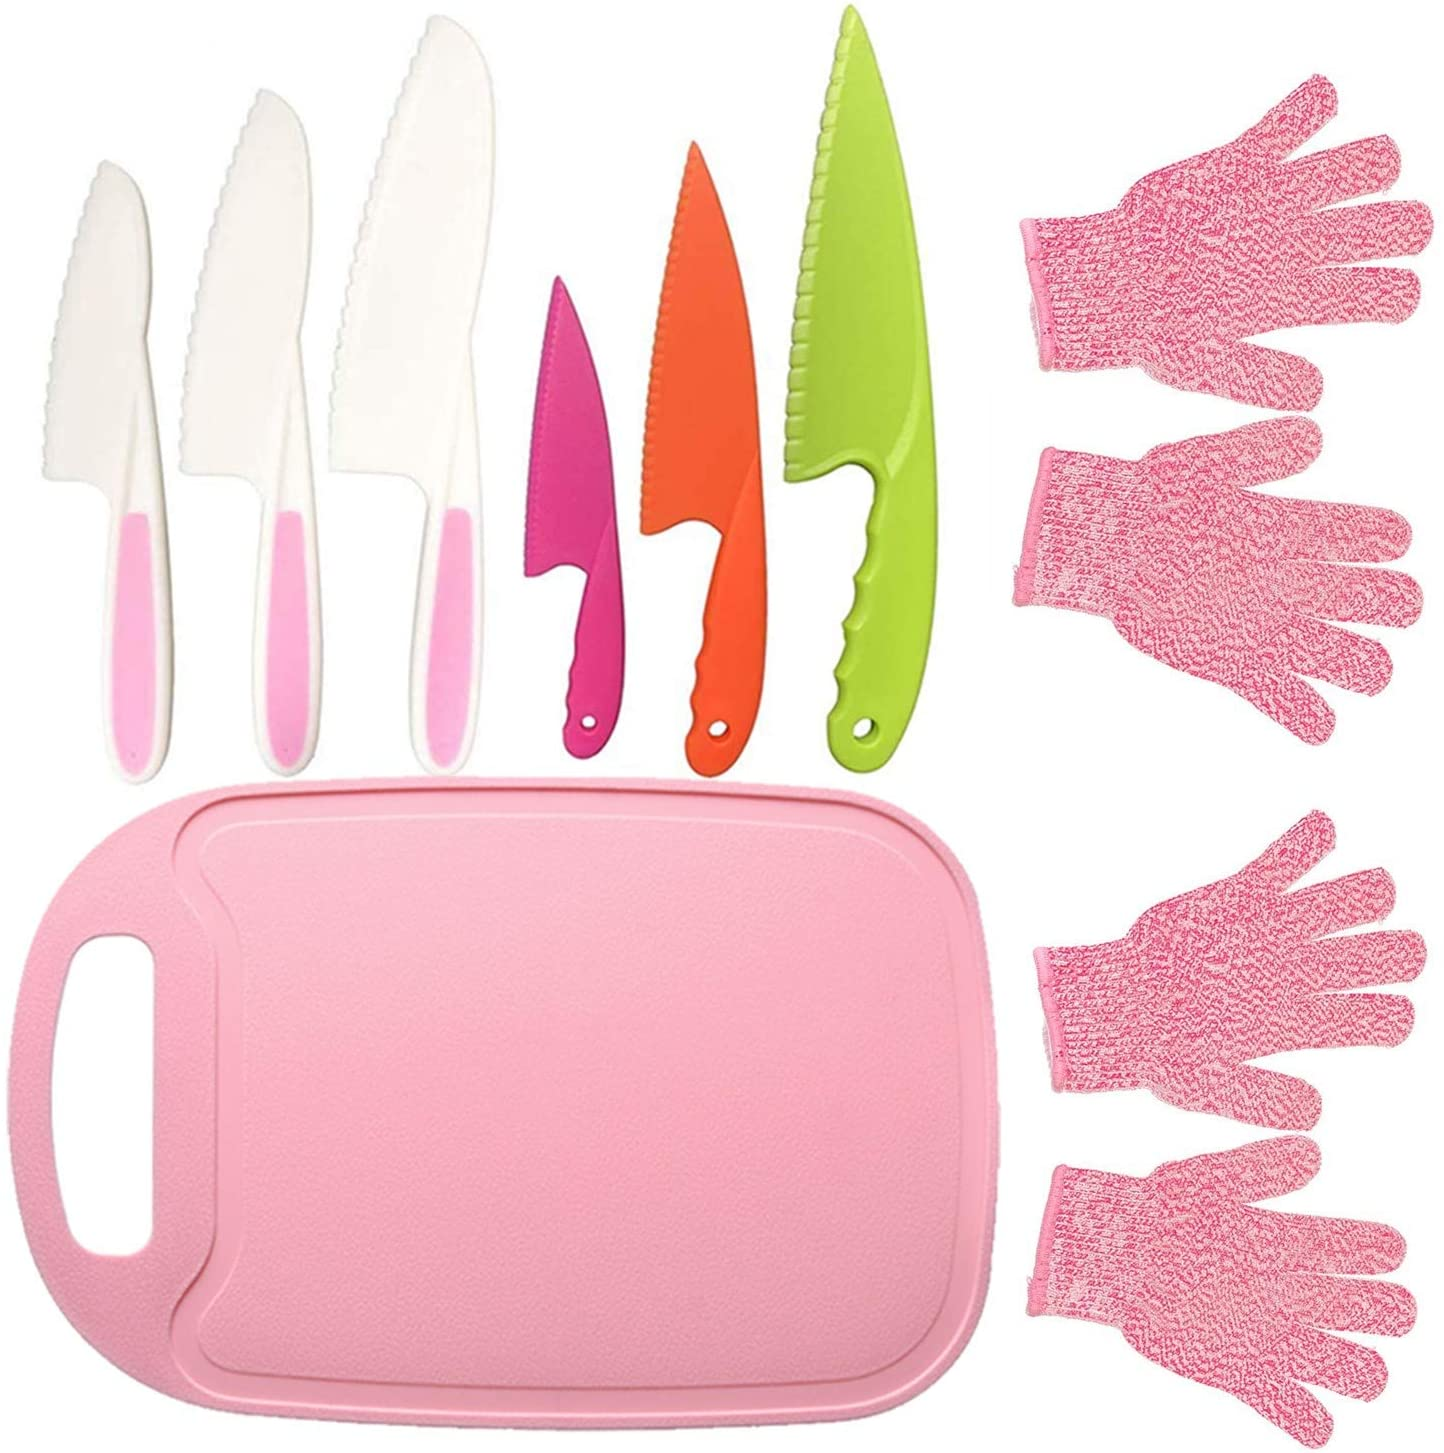 Kids Safe Knife Set with 2 Pair Cut Resistant Gloves (Ages 6-12) & Kids Cutting Board (9PCS, Pink)